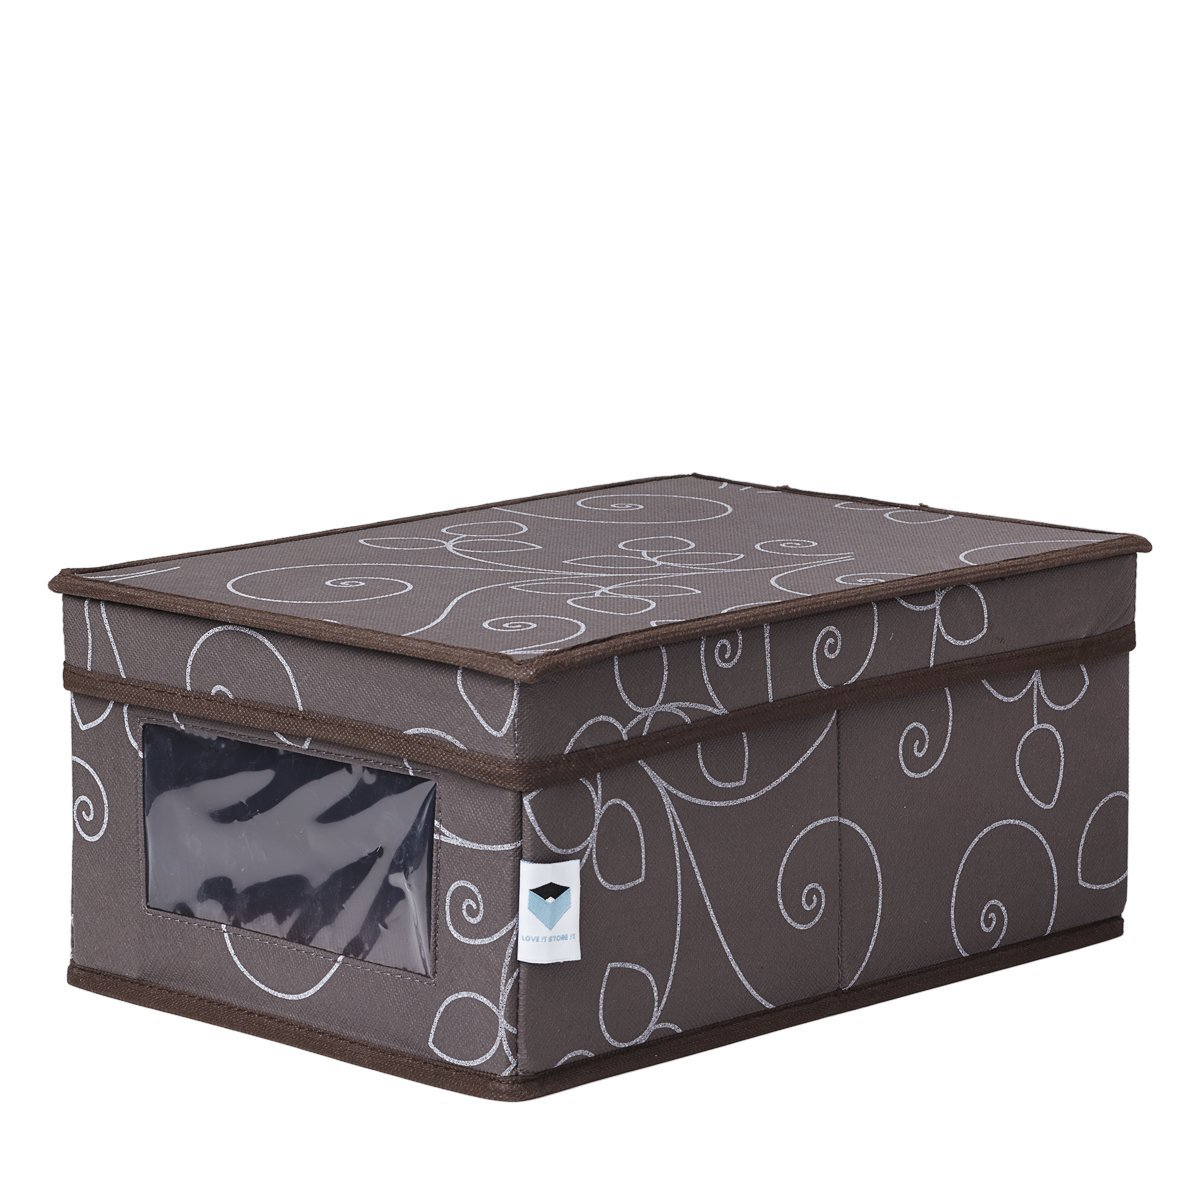 Store.It 754853 Shoe Storage Box with Window 34 x 23 x 15 cm Floral Pattern Grey